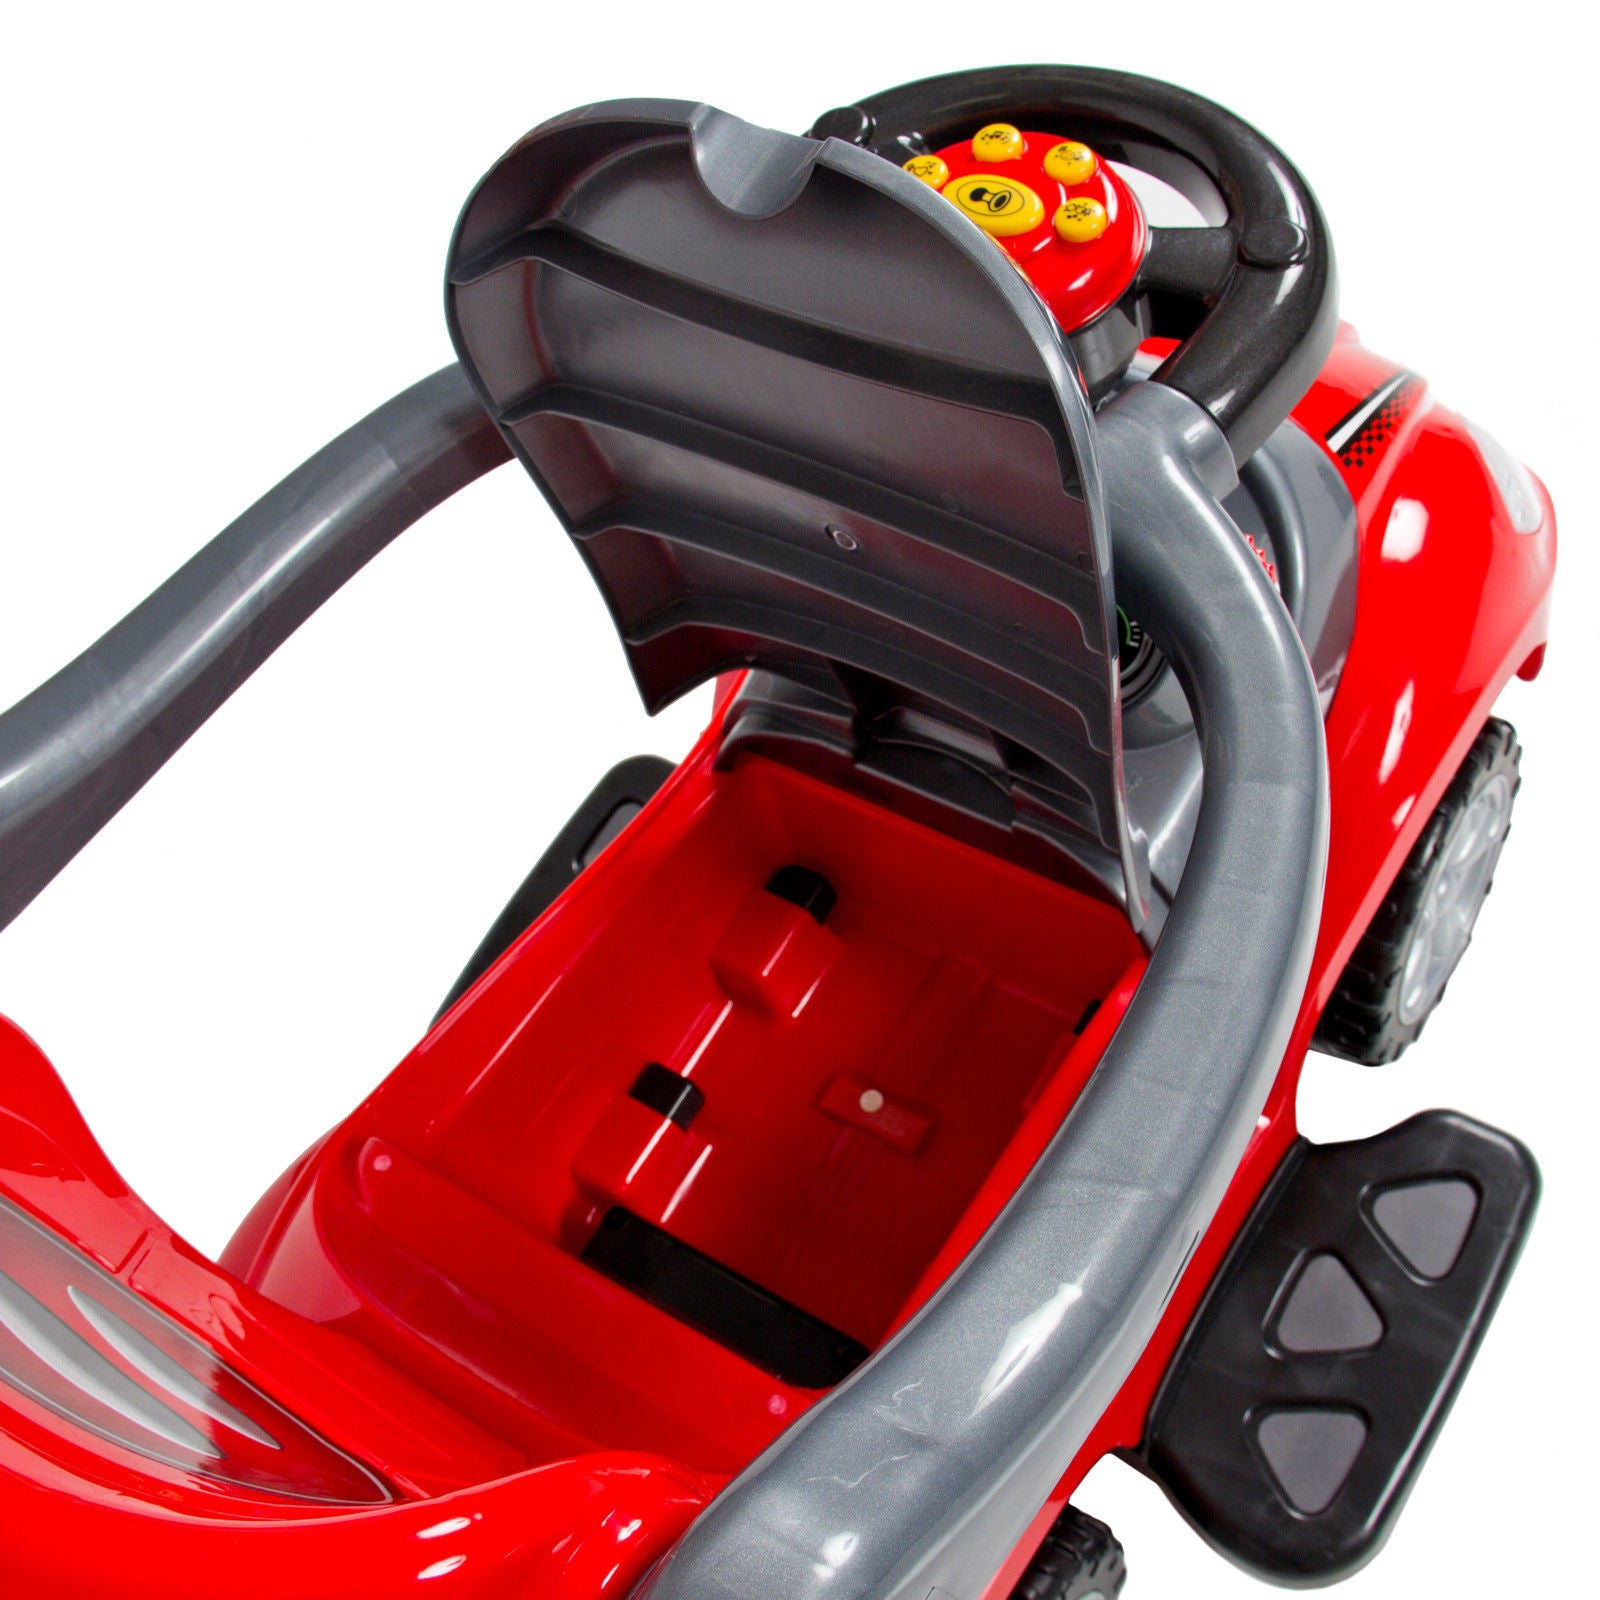 Deluxe Mega 3 in 1 Car Children's Toy Stroller & Walker Red w/ Working Horn